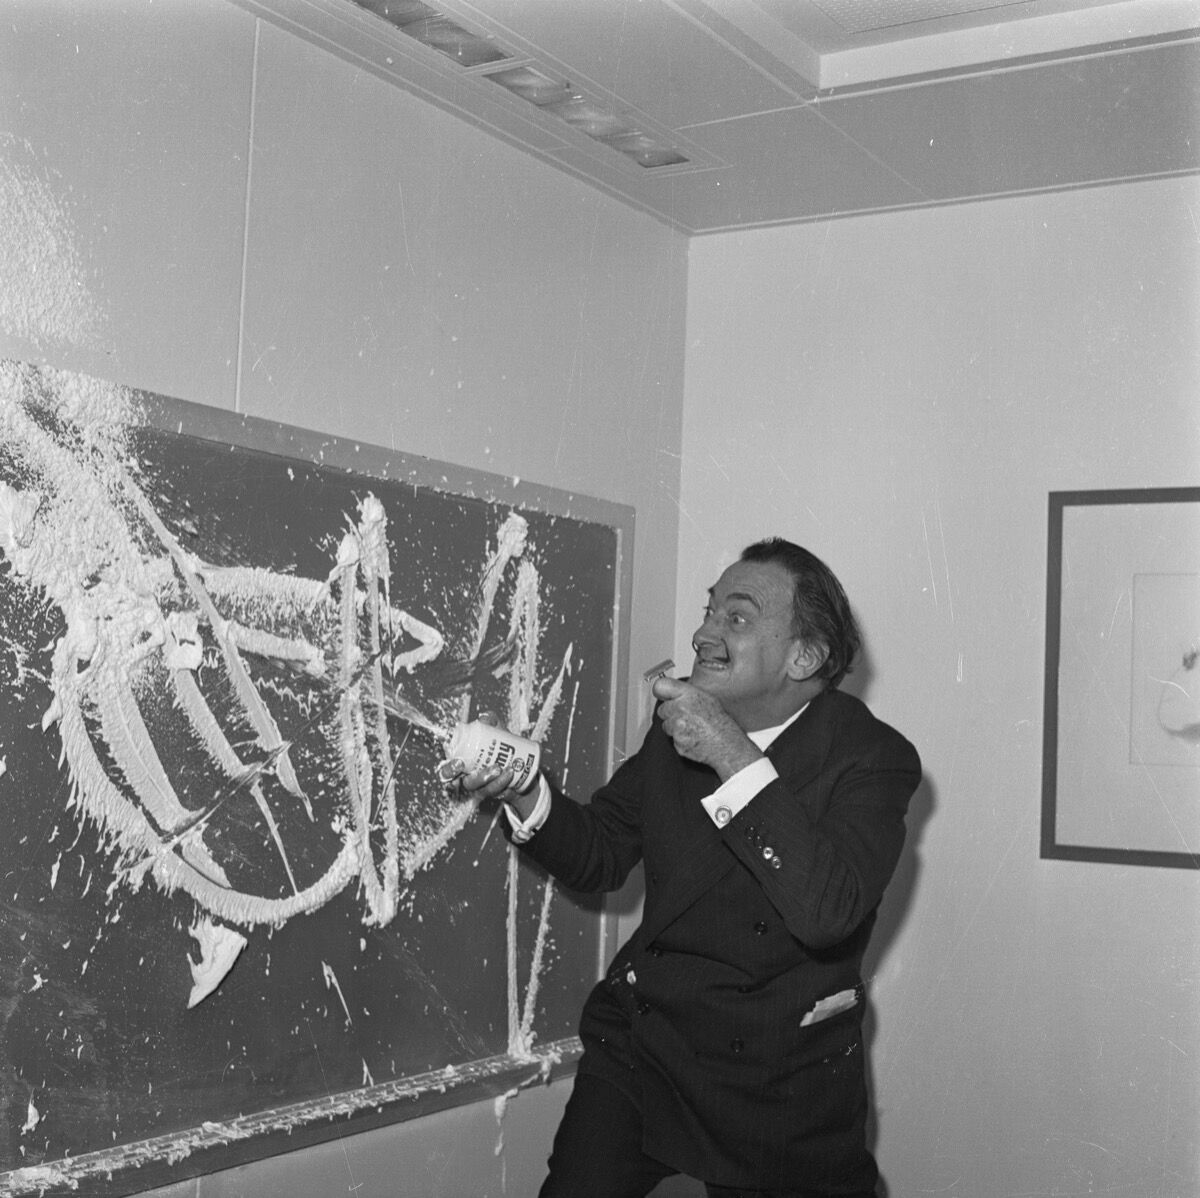 Salvador Dali paints with shaving cream on the blackboard of the children's playroom on the S.S. United States. Image via Getty Images.